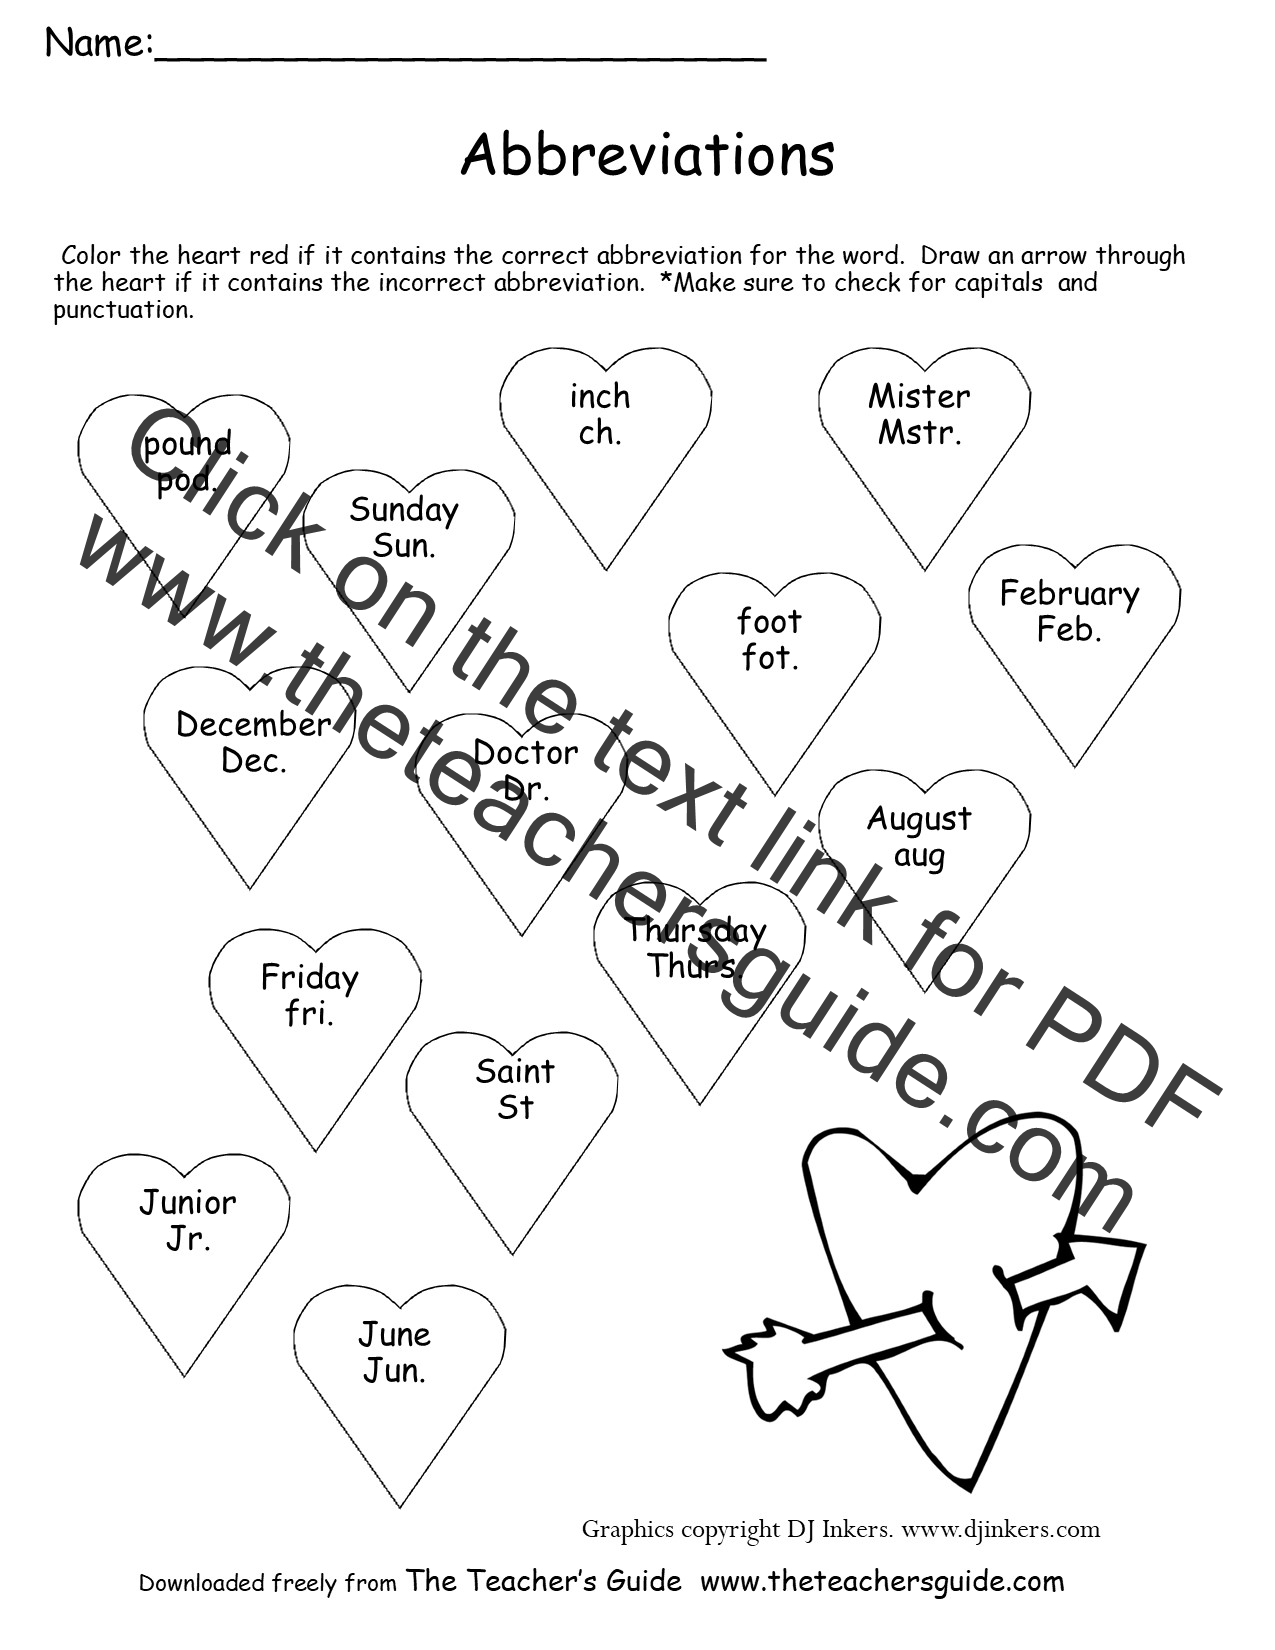 Valentines day lesson plans themes printouts crafts valentines day abbreviations worksheet maxwellsz